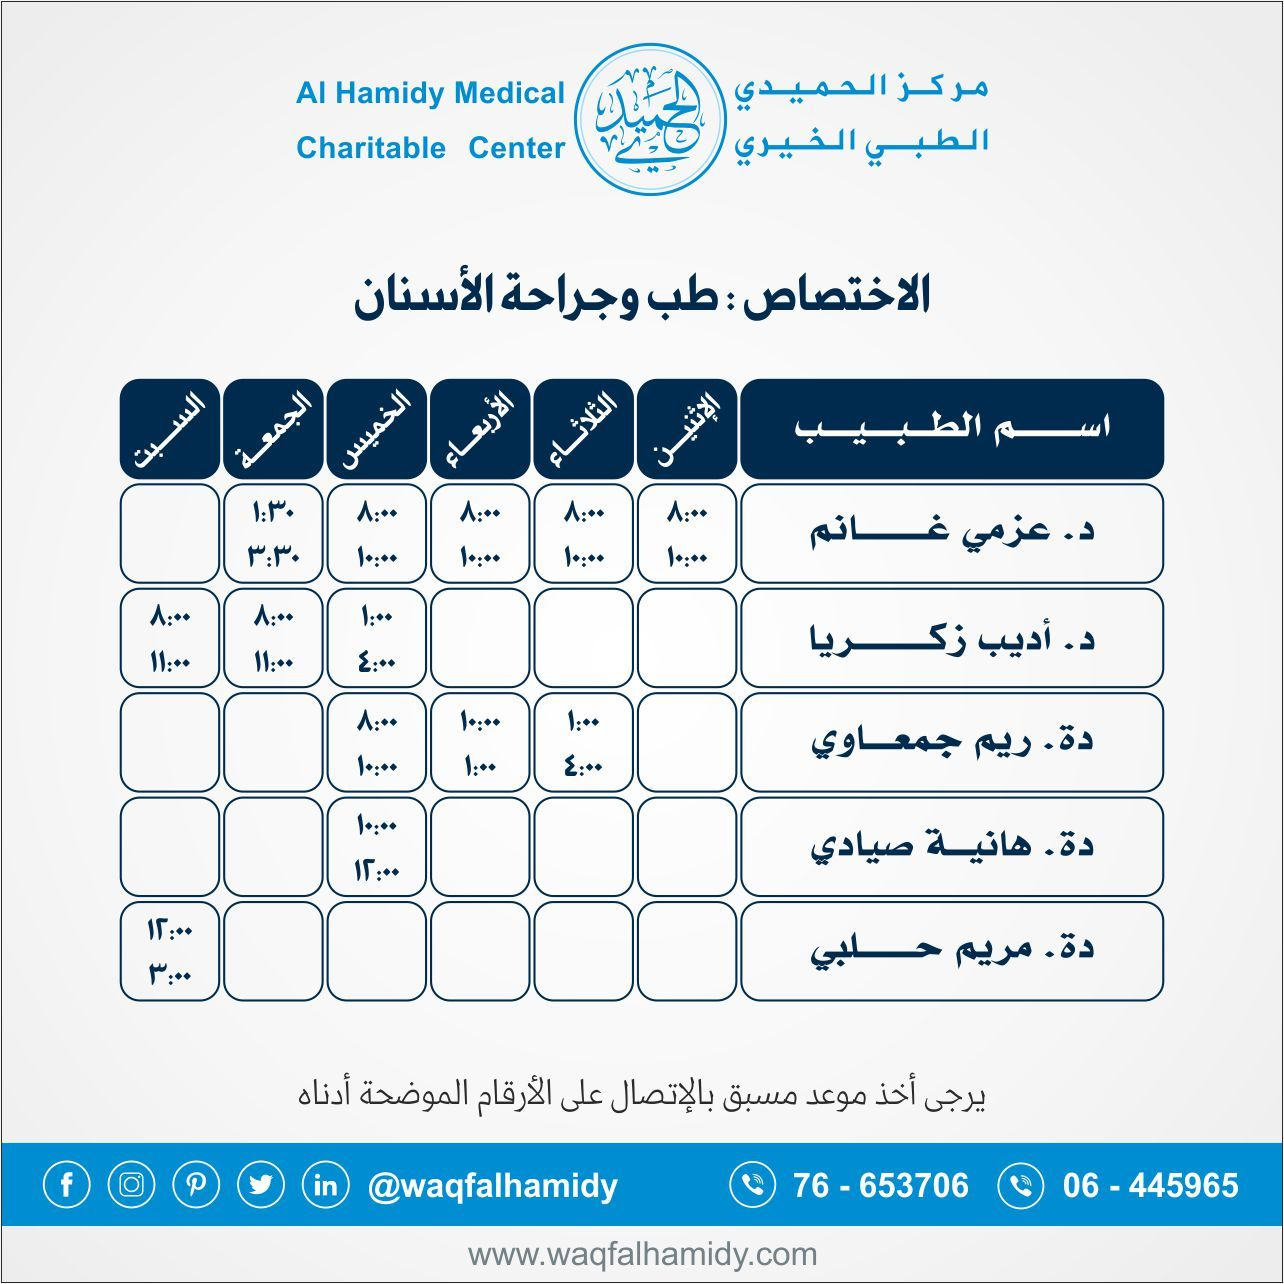 Pin by WaqfAlHamidy on دوام الأطباء 112018 Medical